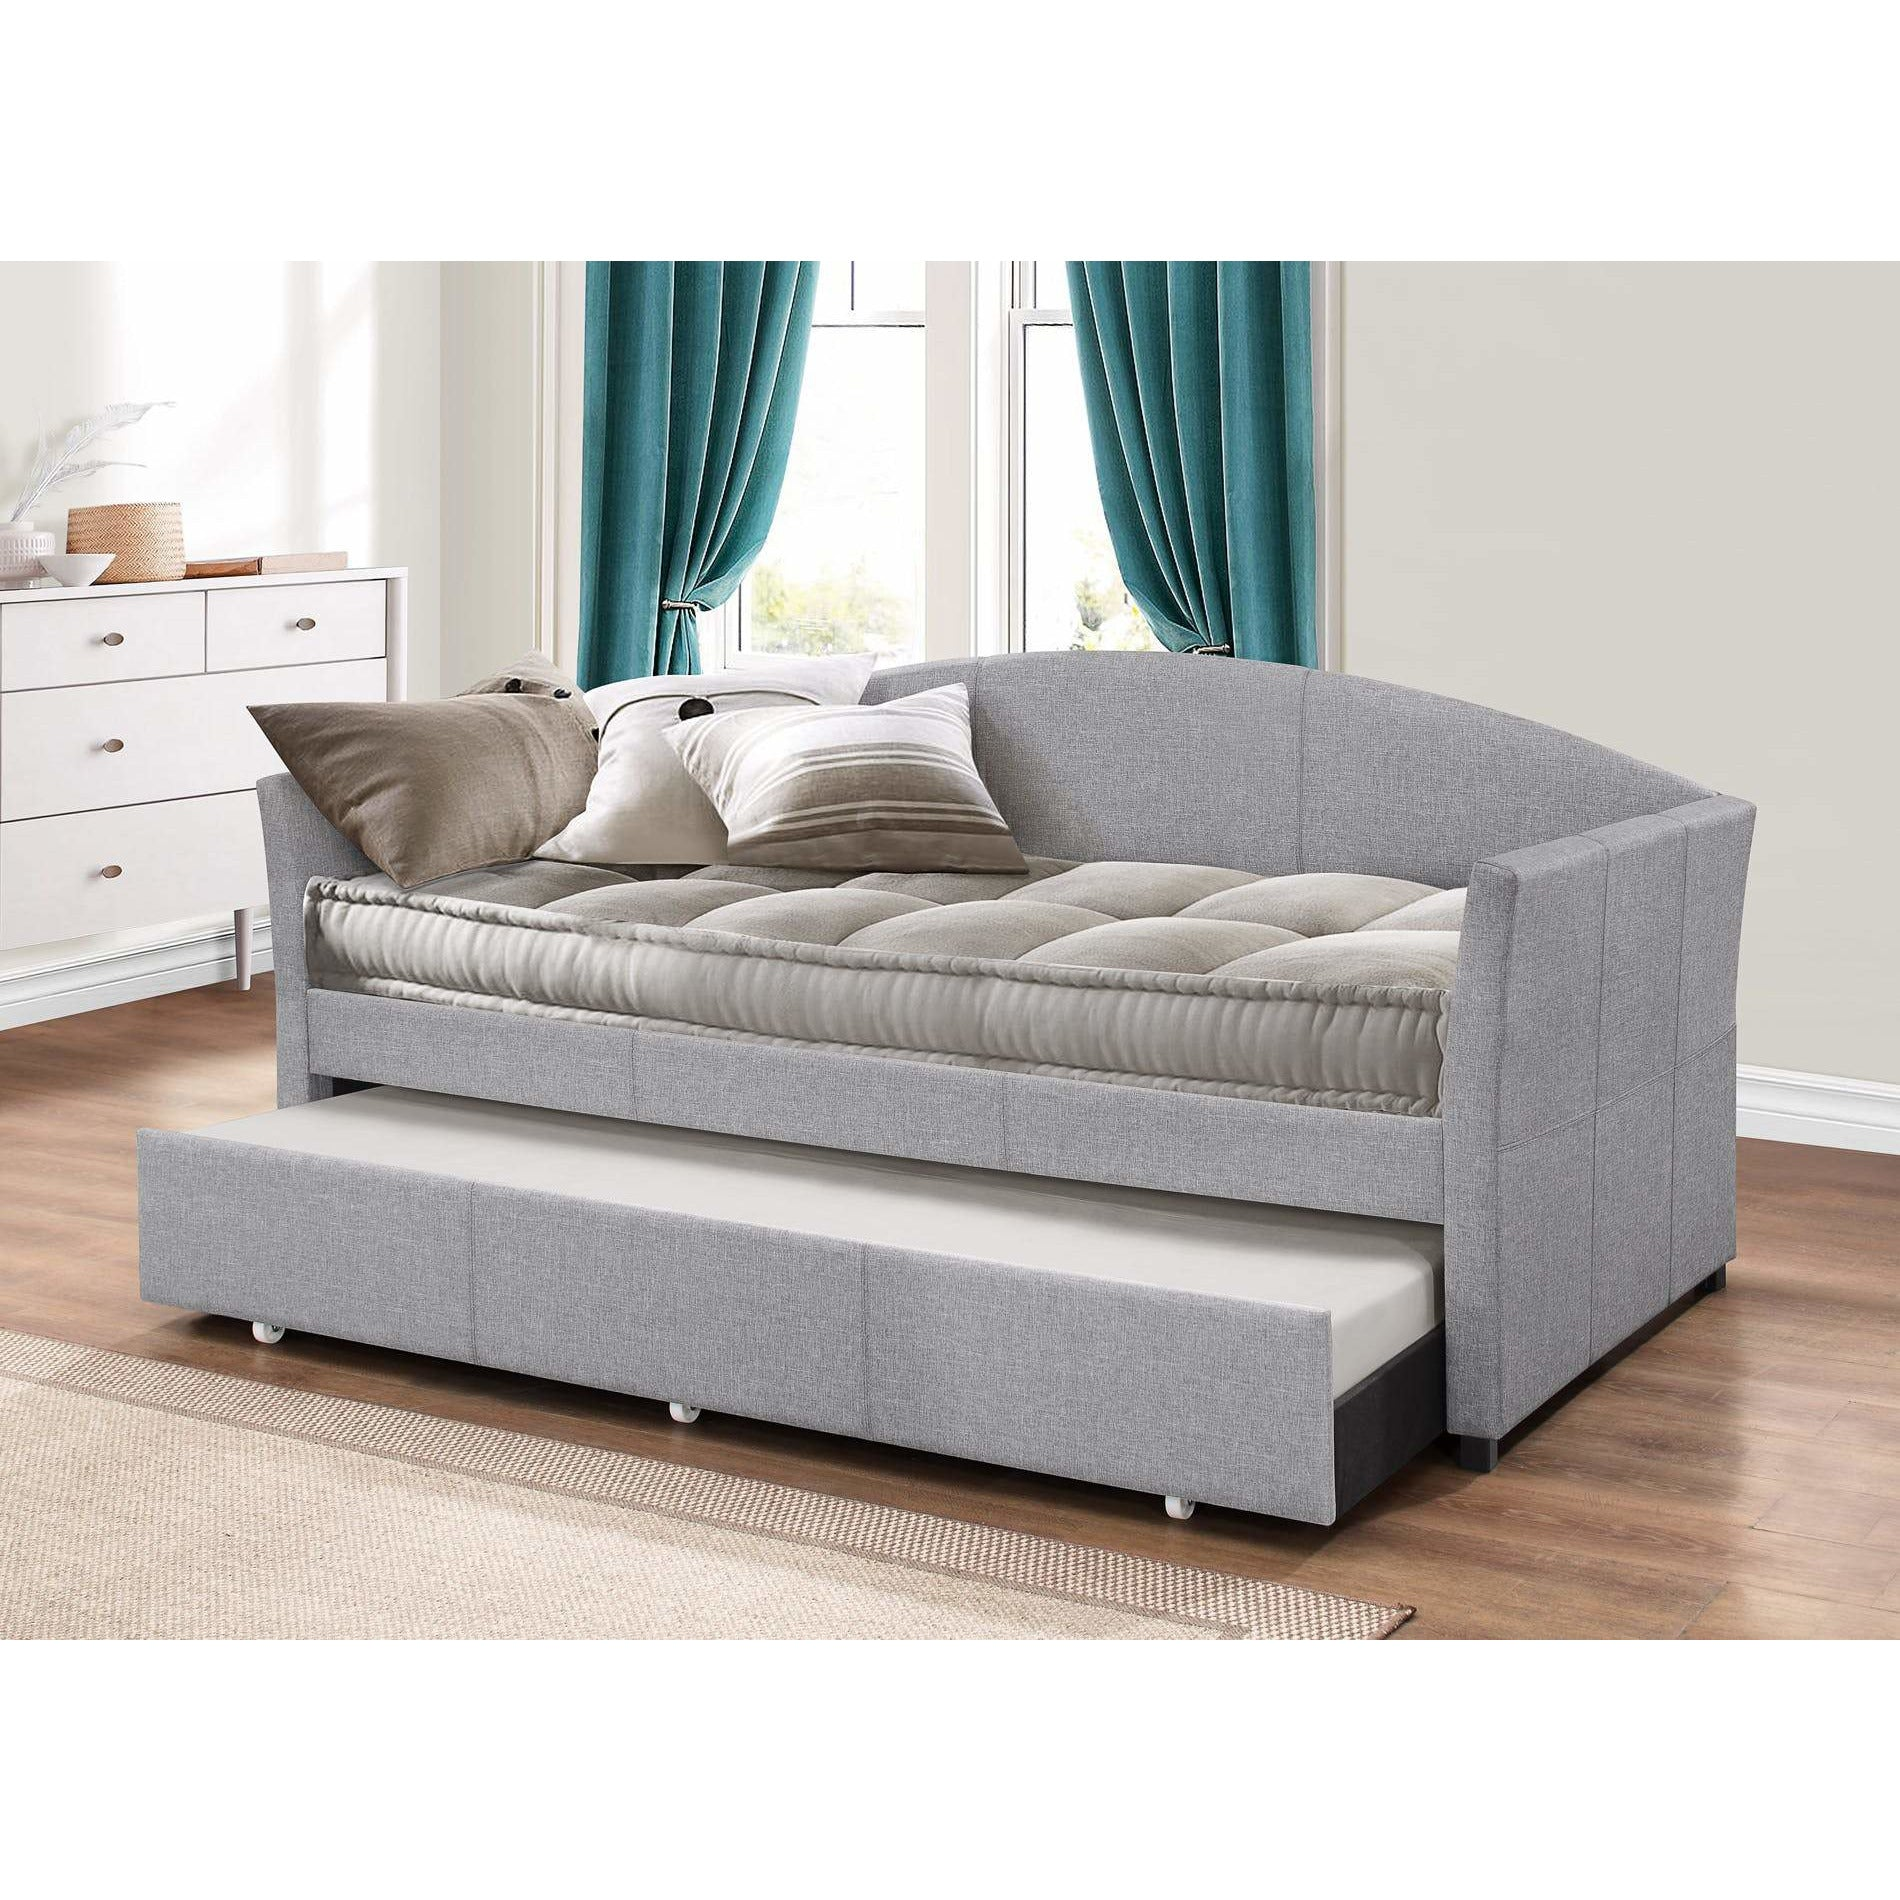 Westchester Daybed Trundle